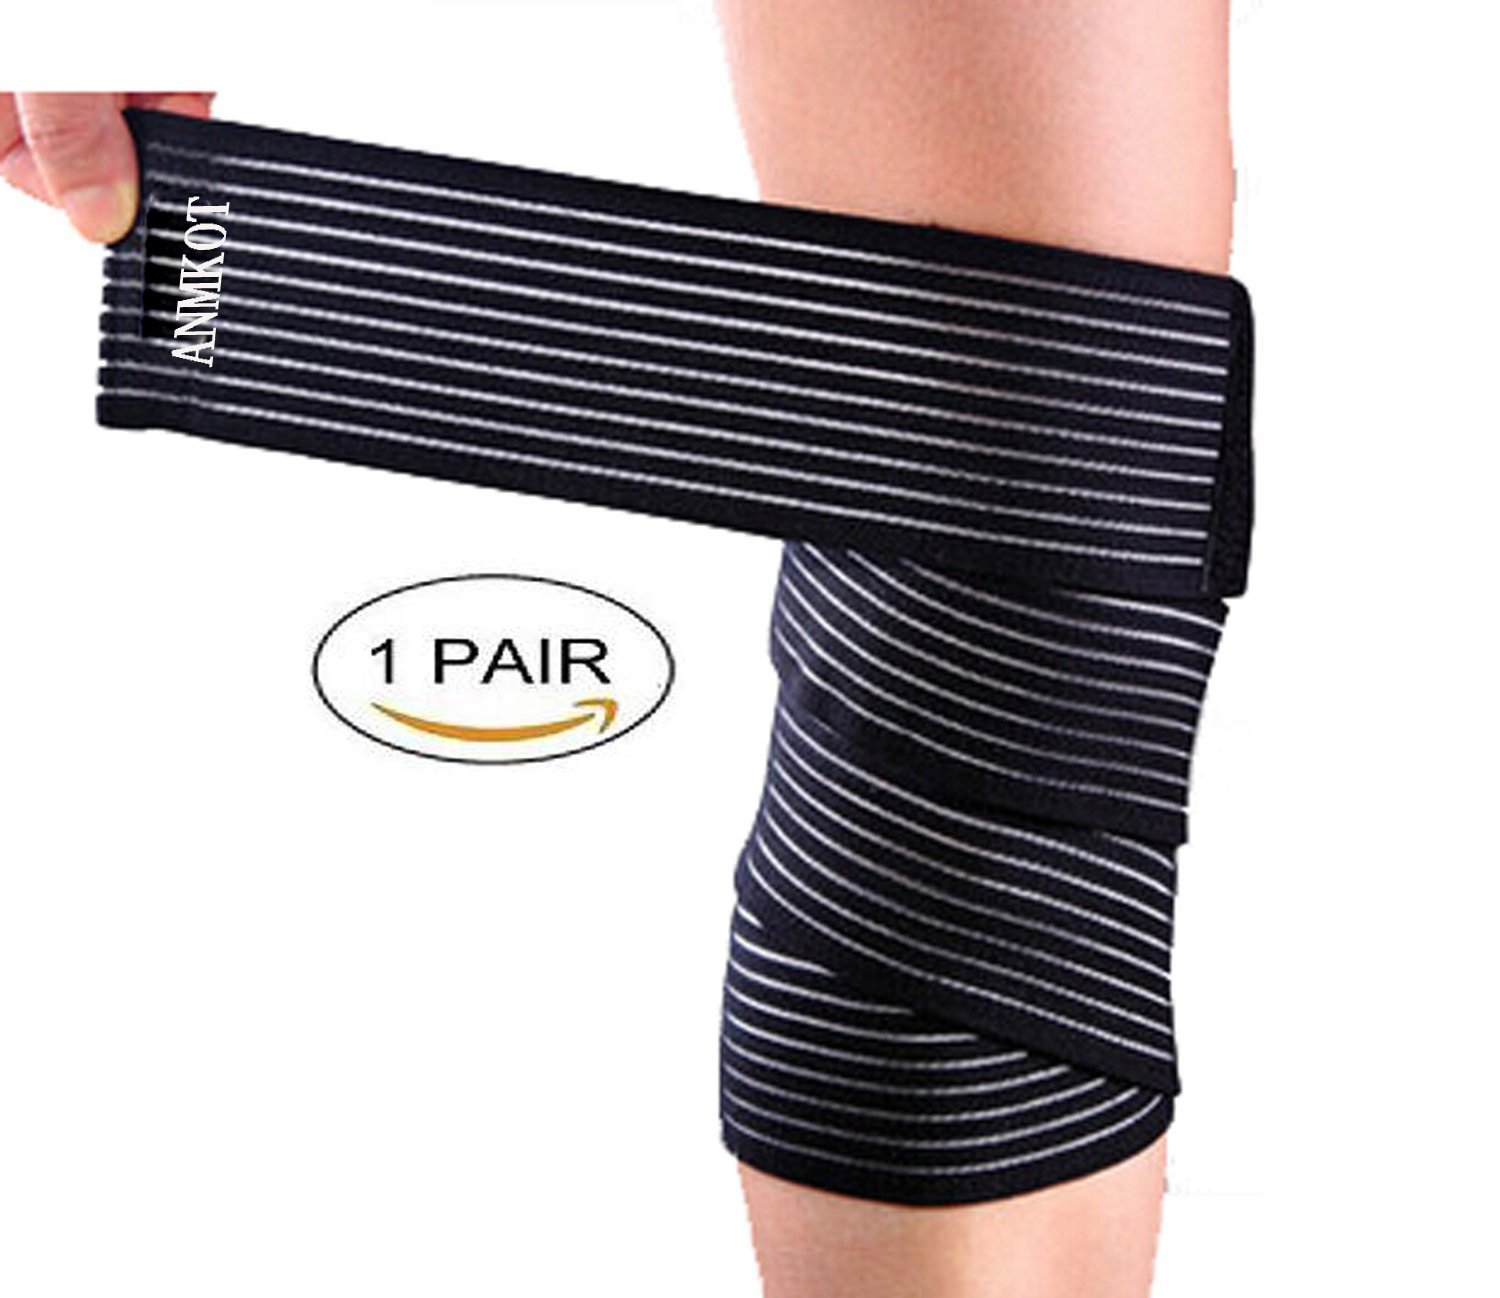 7918fb5374 Get Quotations · ANMKOT 2PCS Black Elastic Breathable Knee Pain Relief  Straps Support Wraps Gym Squat Lifting Knee Brace